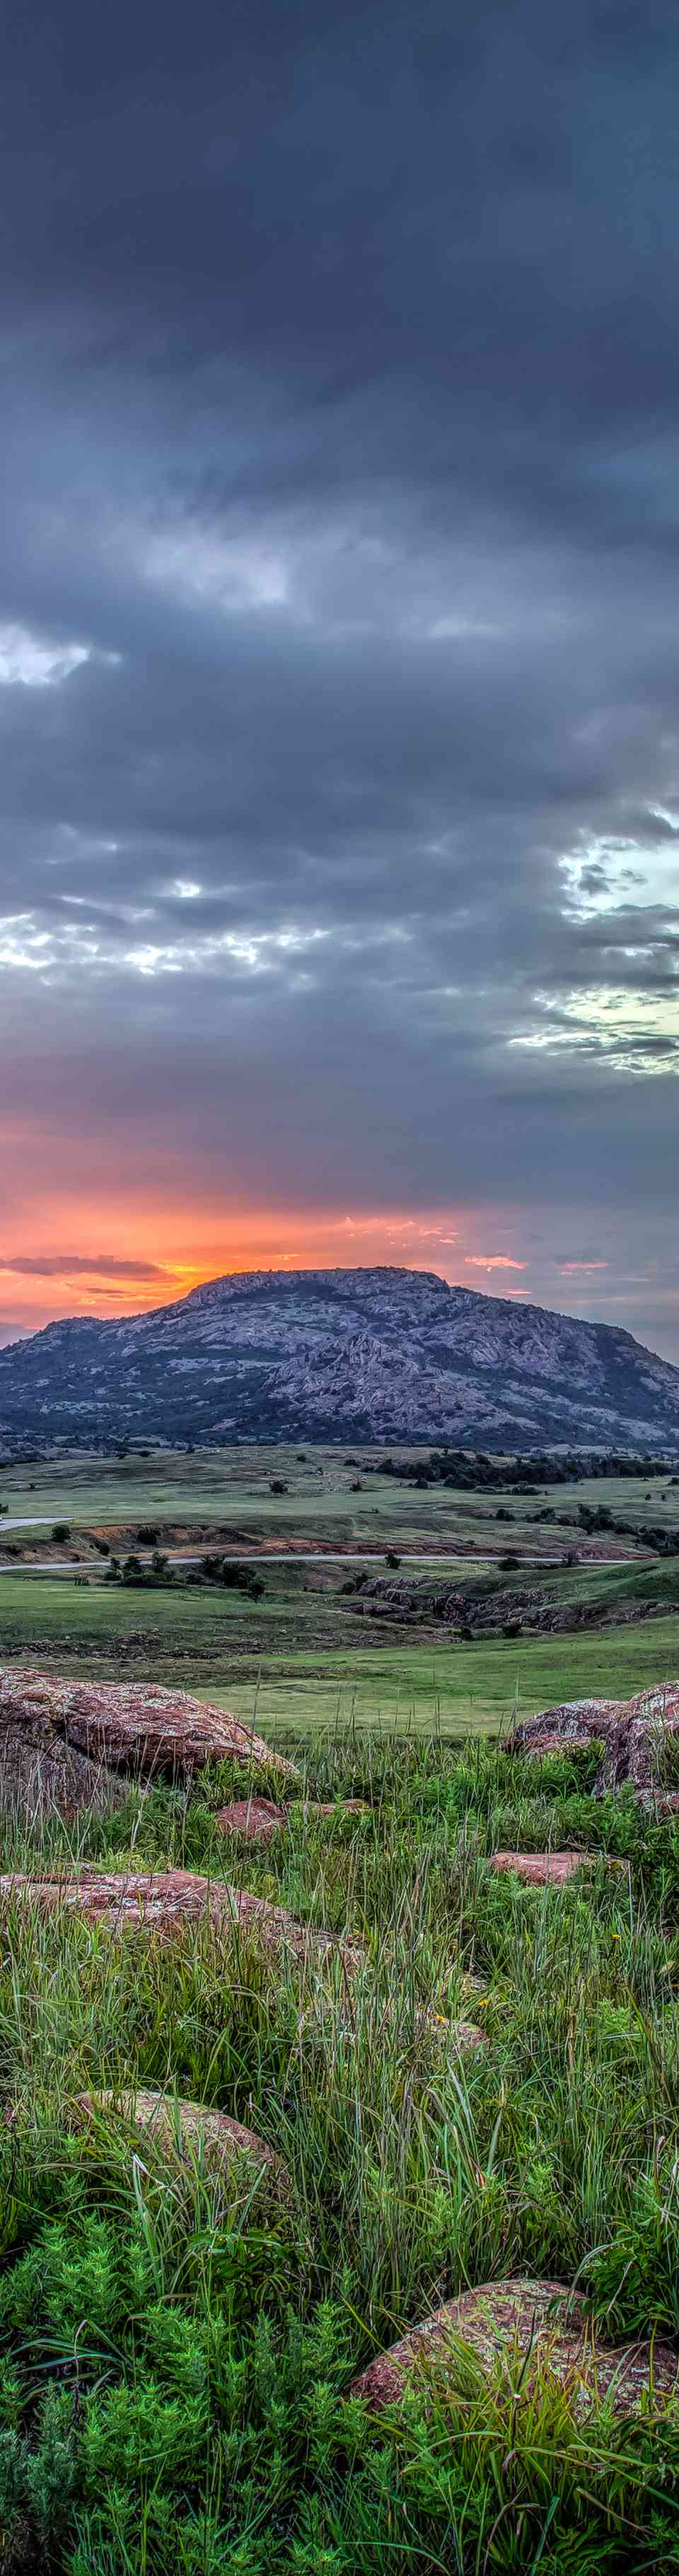 Sunrise over Mt. Scott, Oklahoma, USA